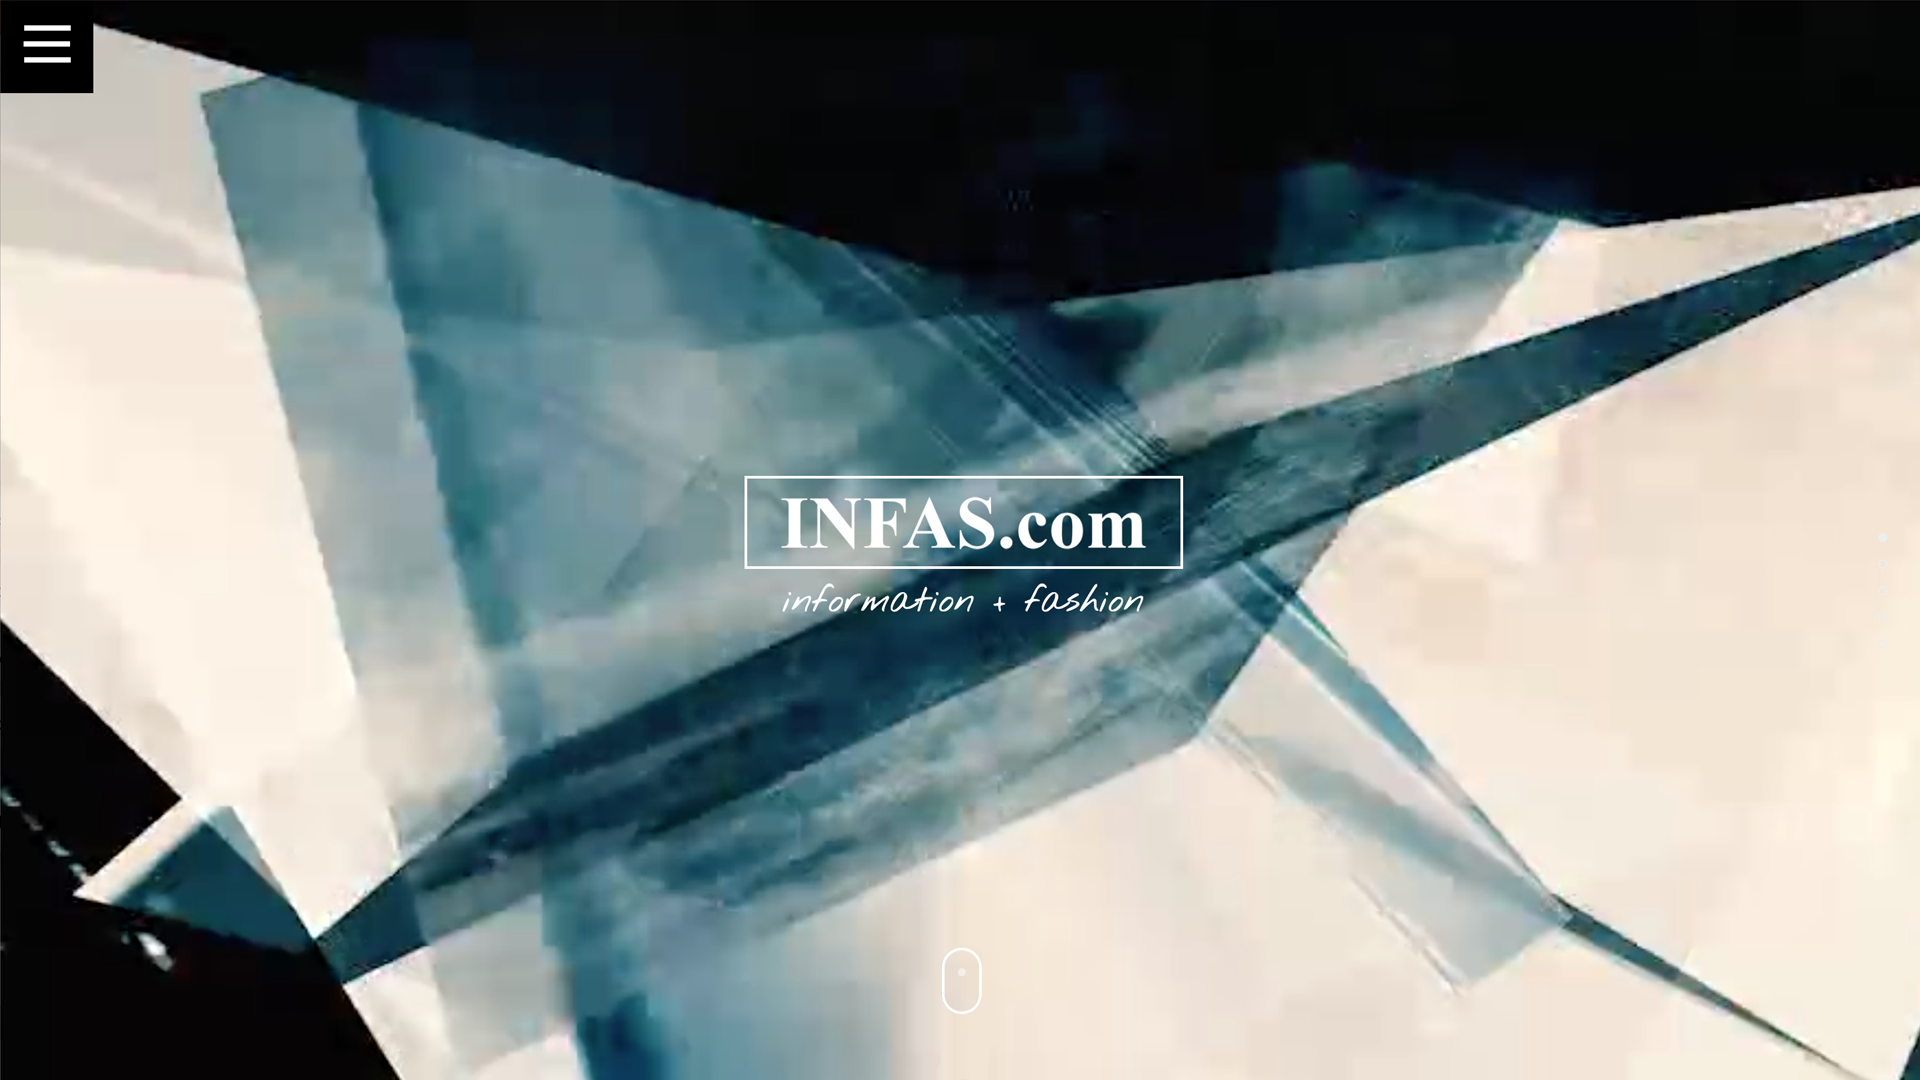 infas.com website